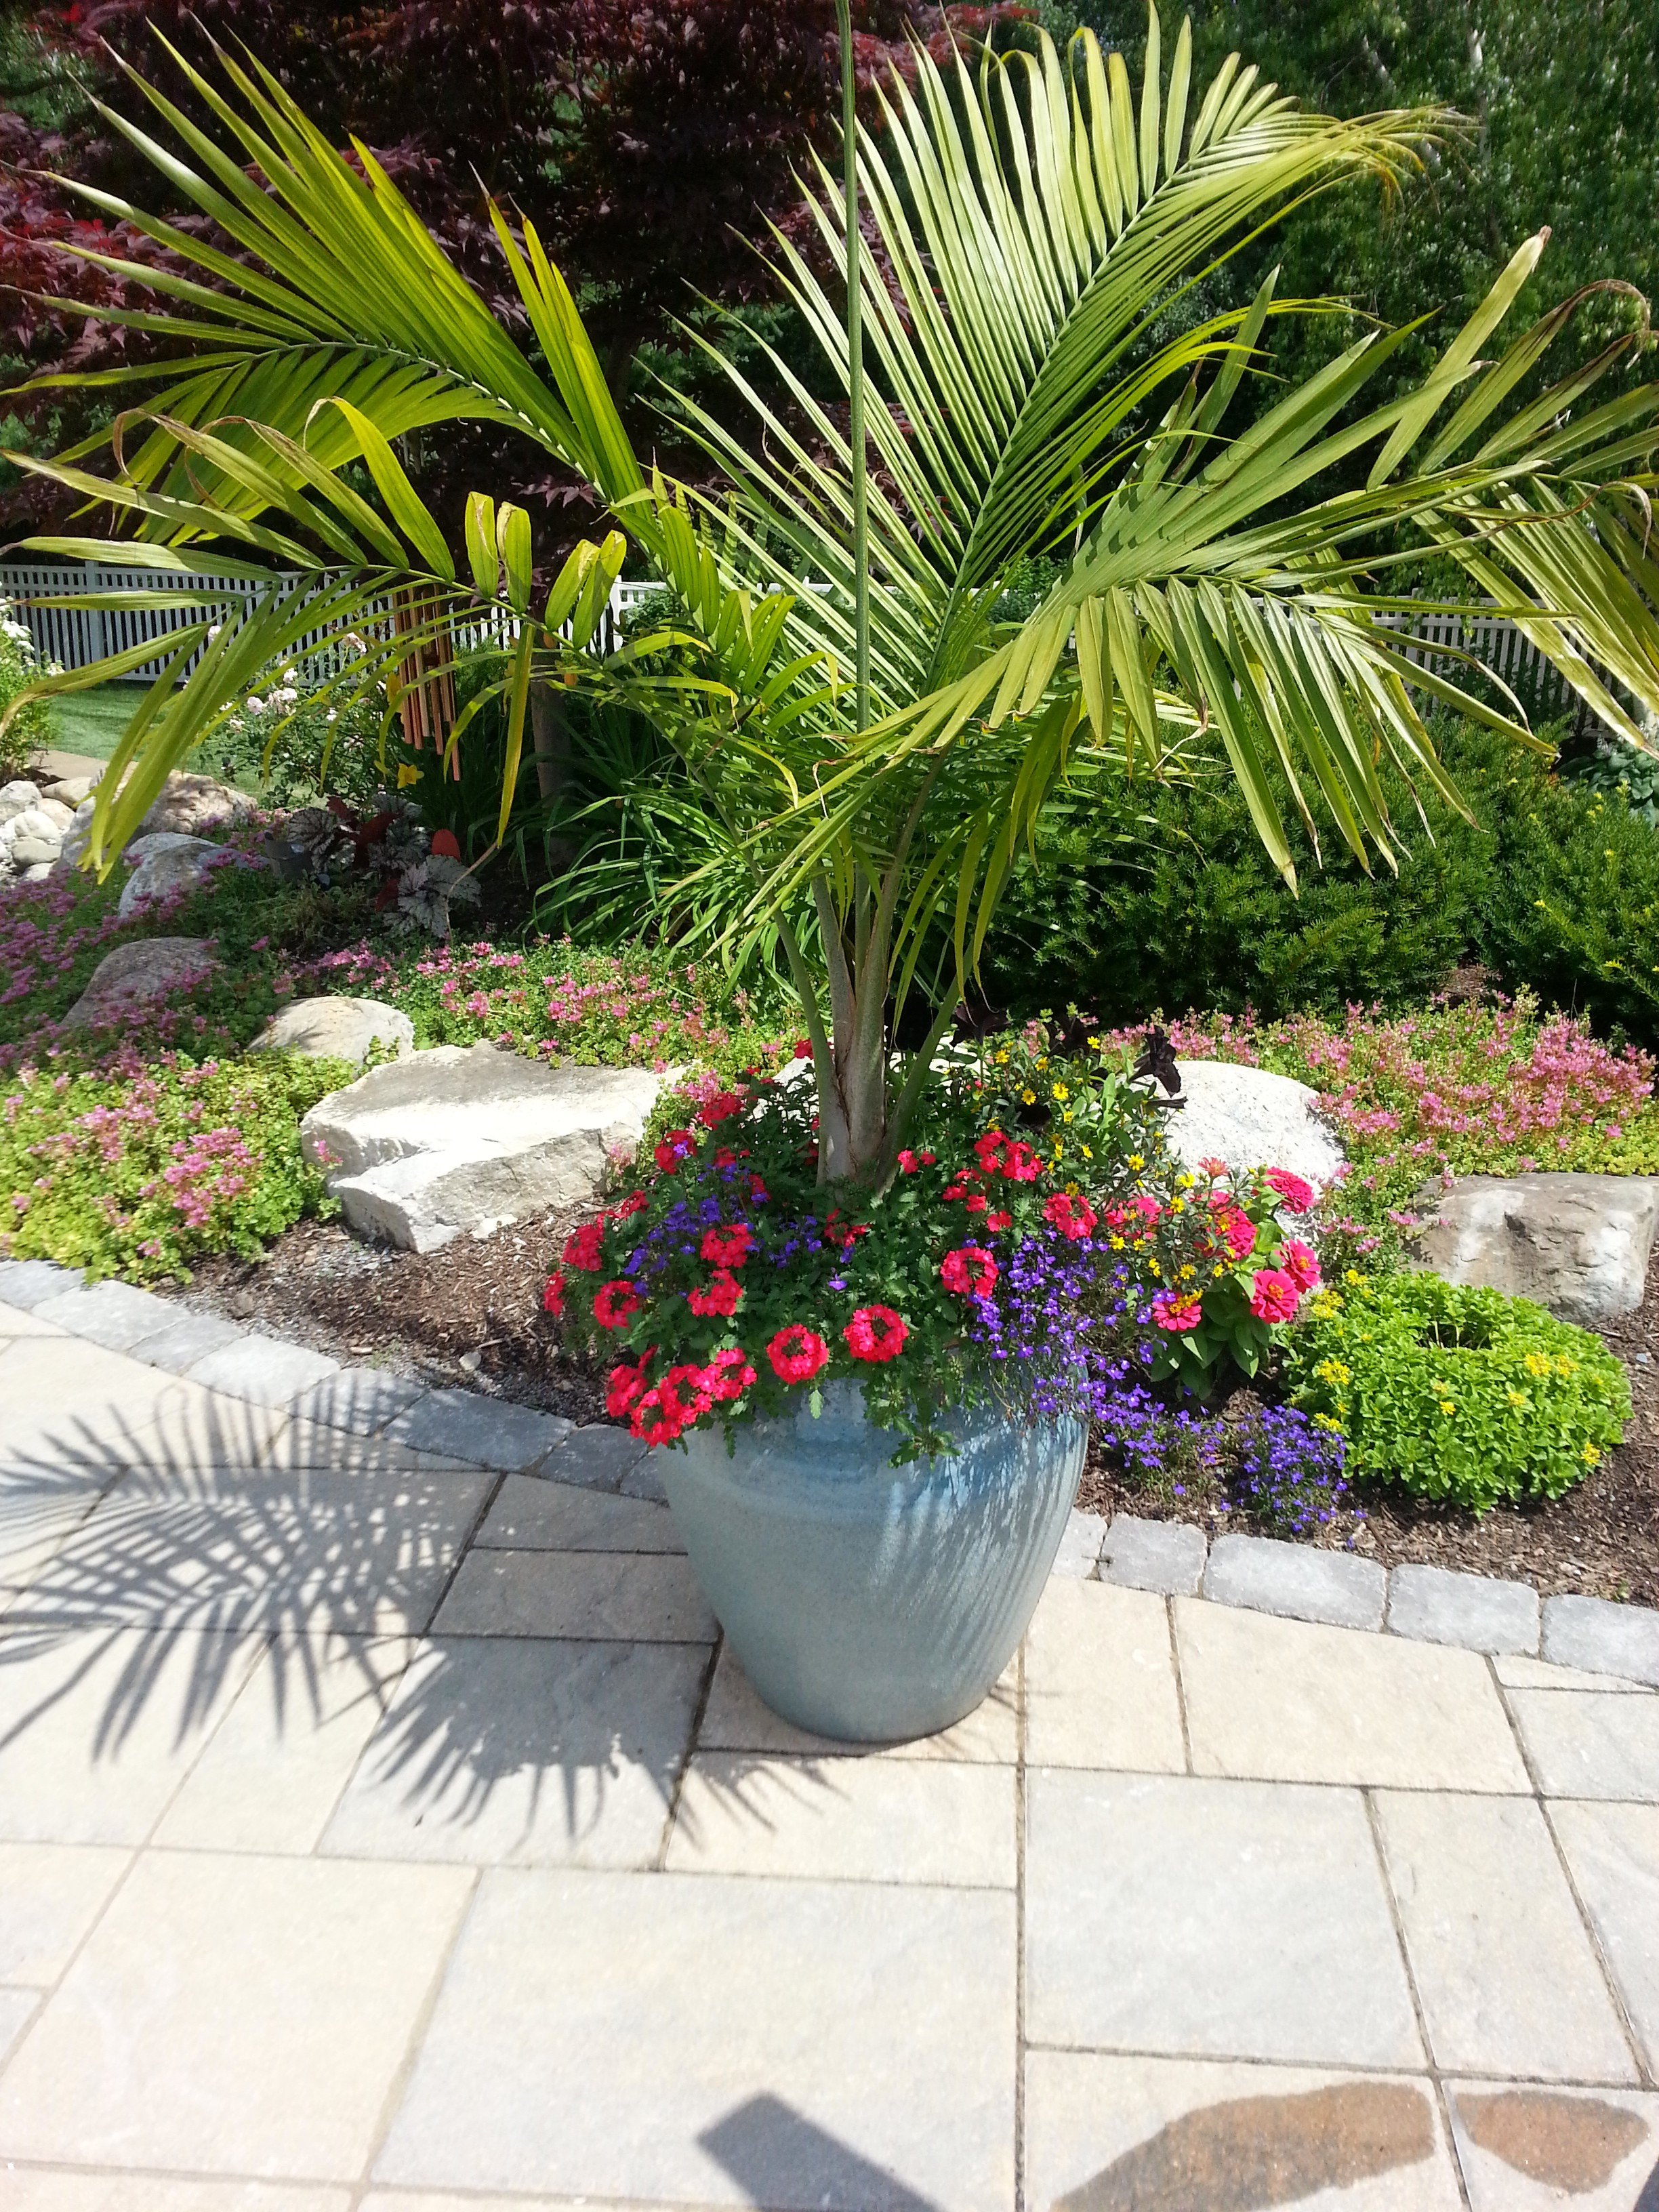 Majesty Palm with annuals